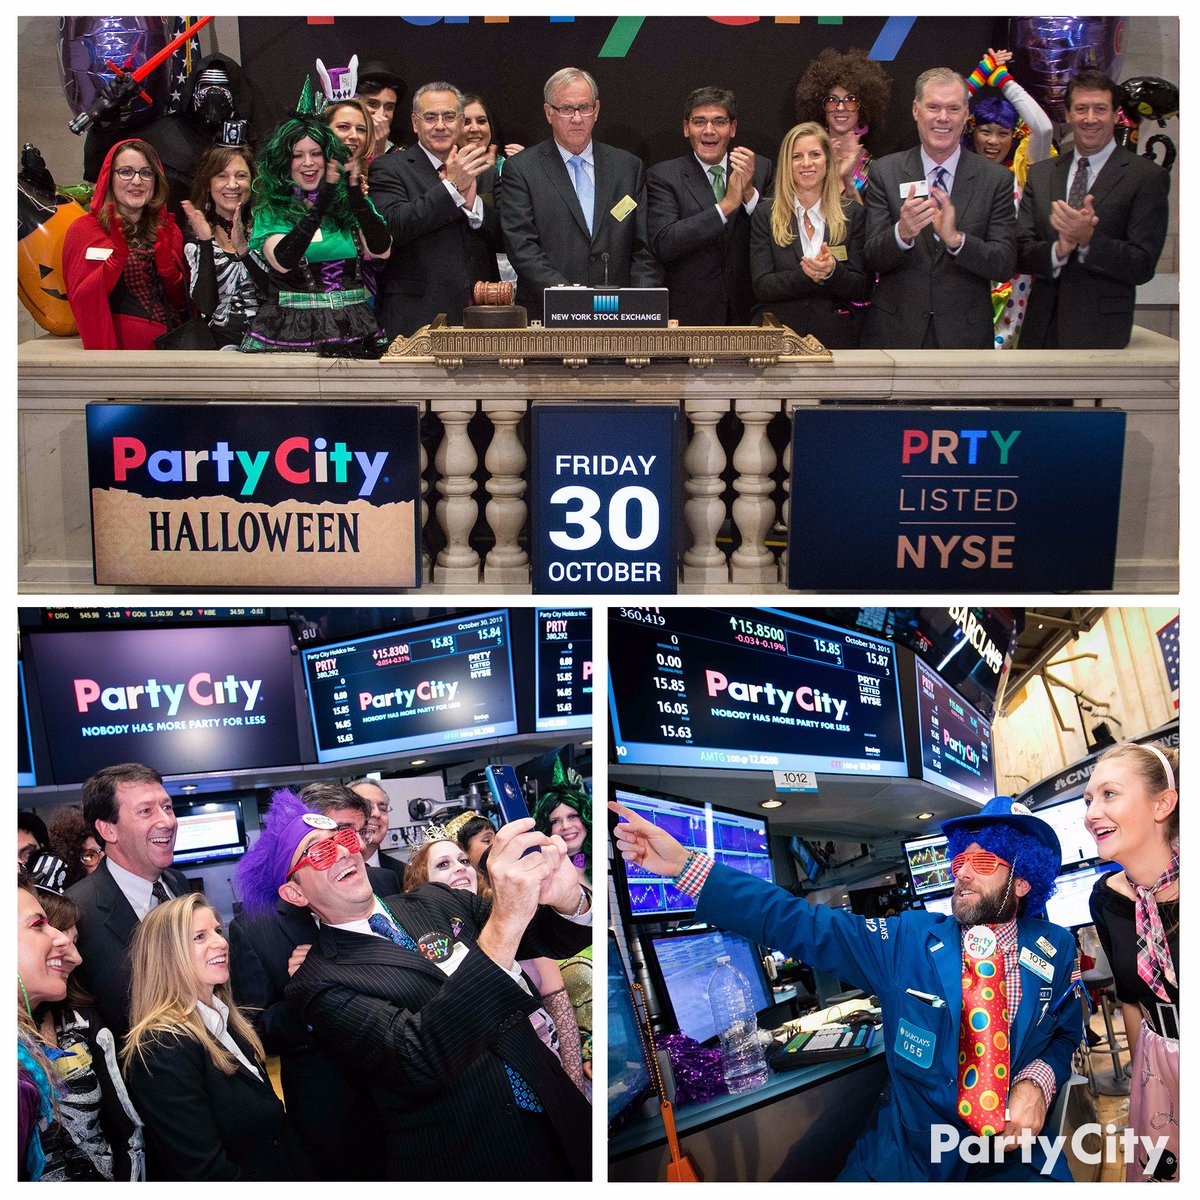 Party City on Twitter: